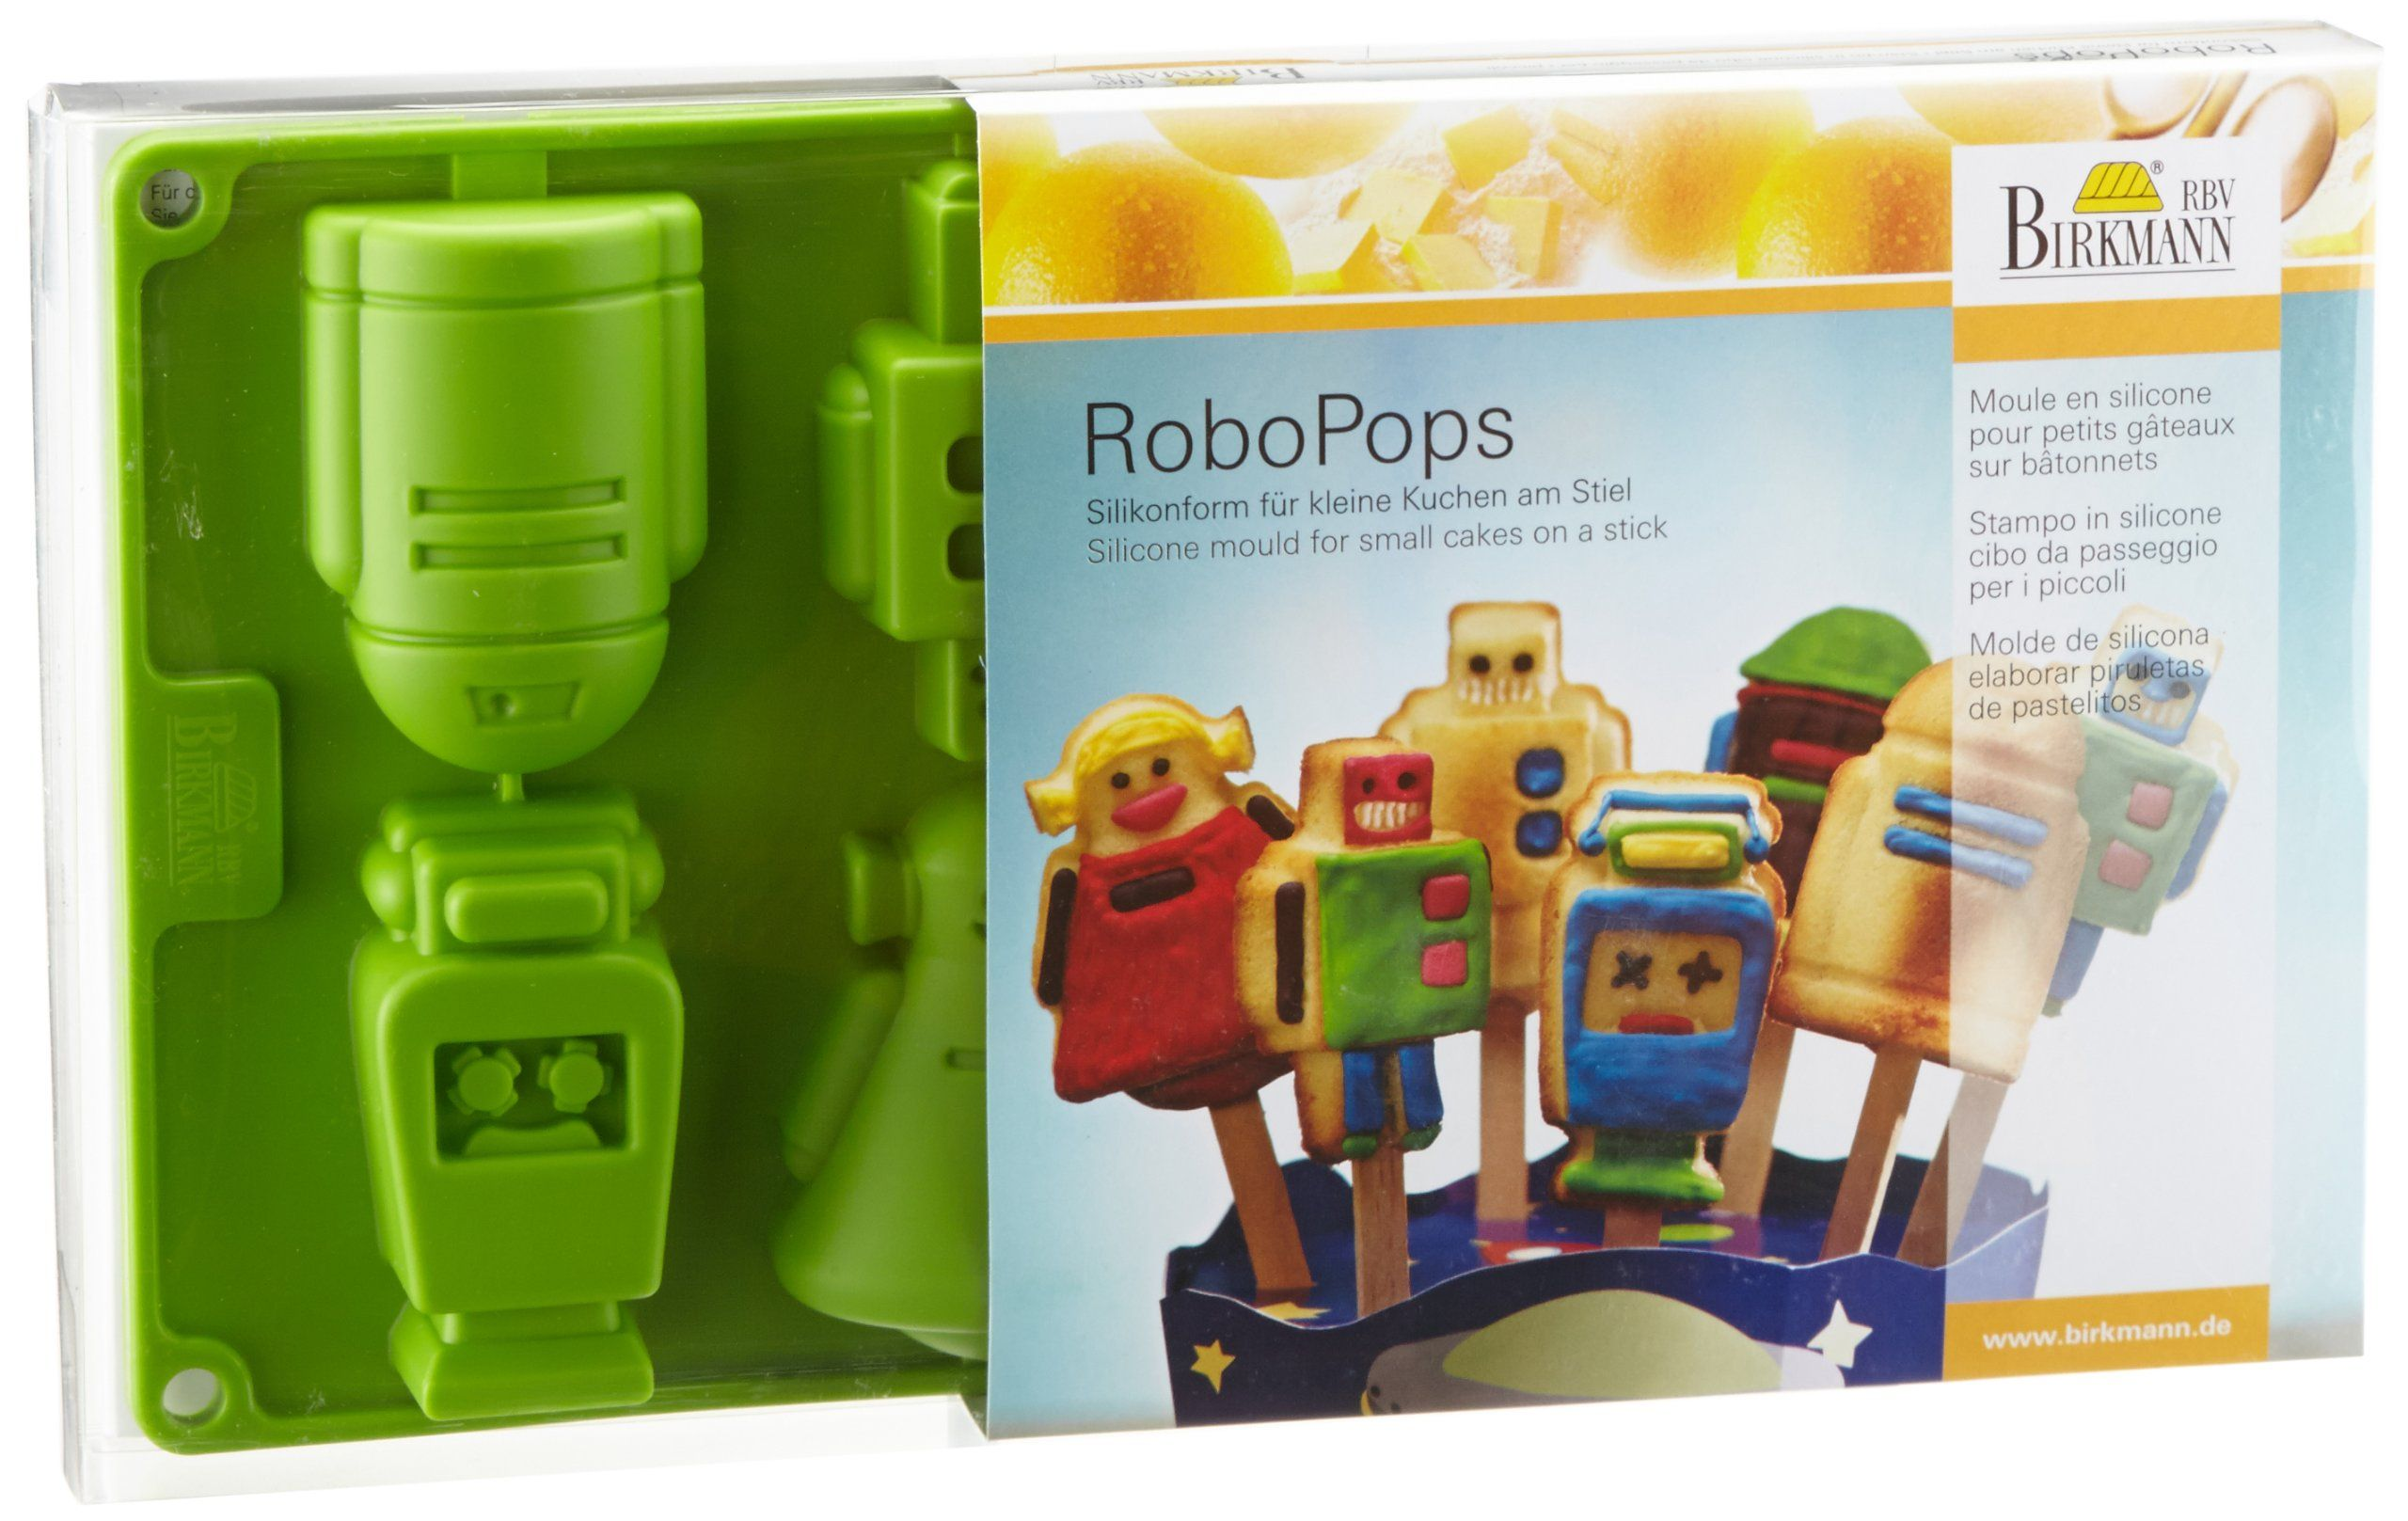 Birkmann robopops robot shaped silicone mold for small